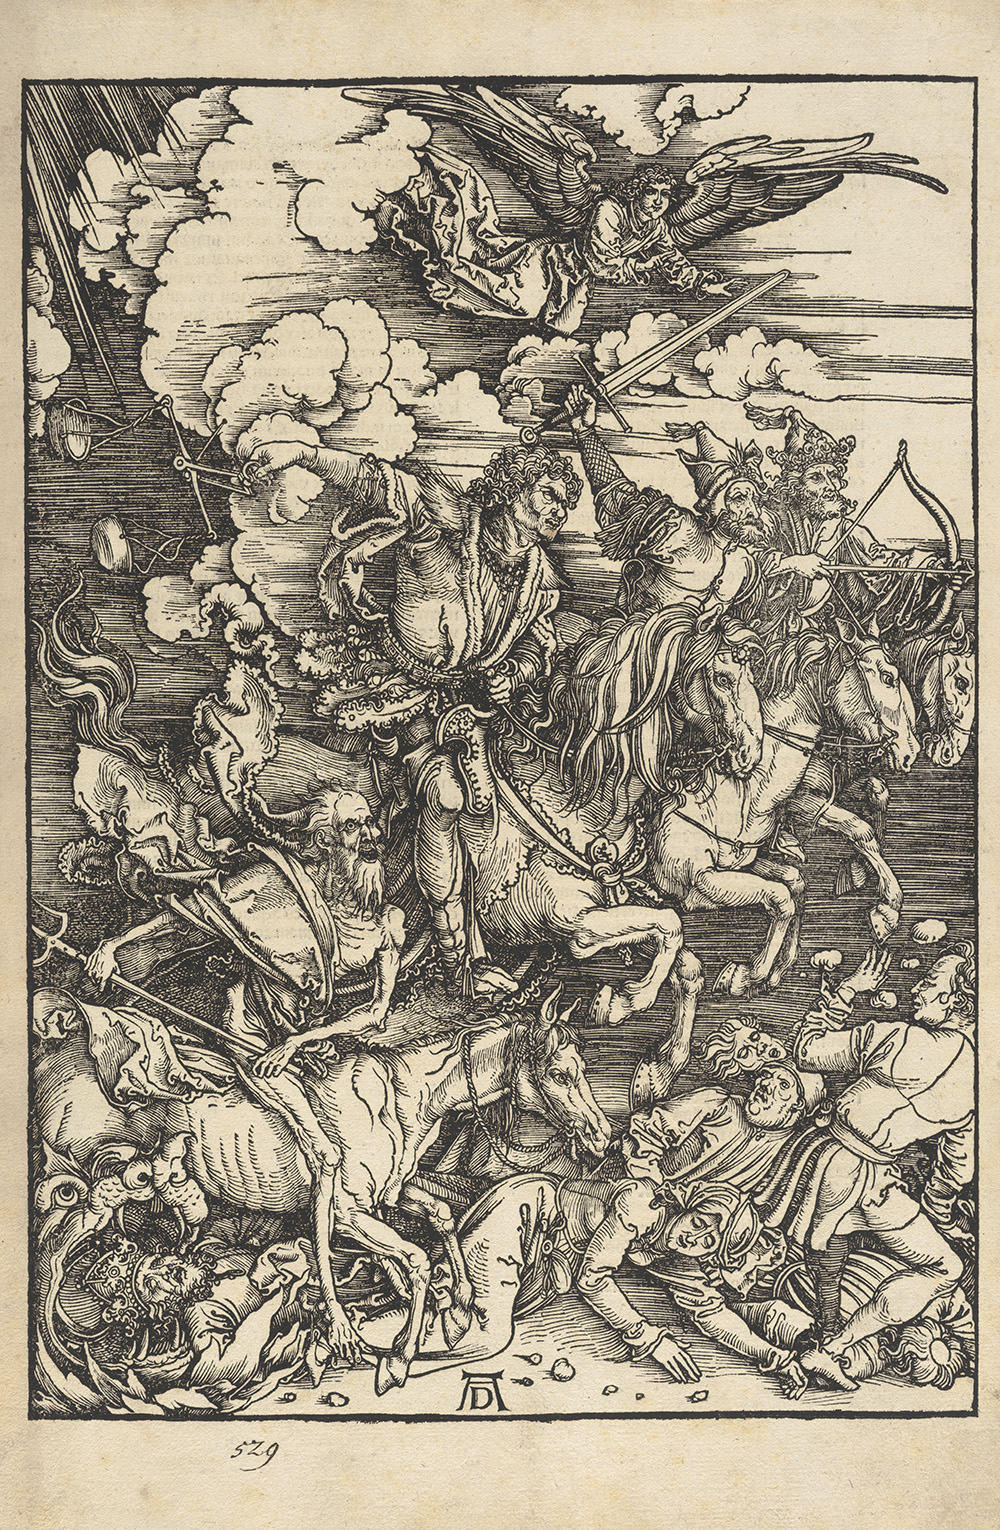 Albrecht Dürer (German 1471–1528), <i>The Four Horsemen of the Apocalypse</i>, 1511, woodcut. Acquired with funds provided by the estate of Edith and Dr. Paul J. Vignos Jr. '41, 2013.013.005